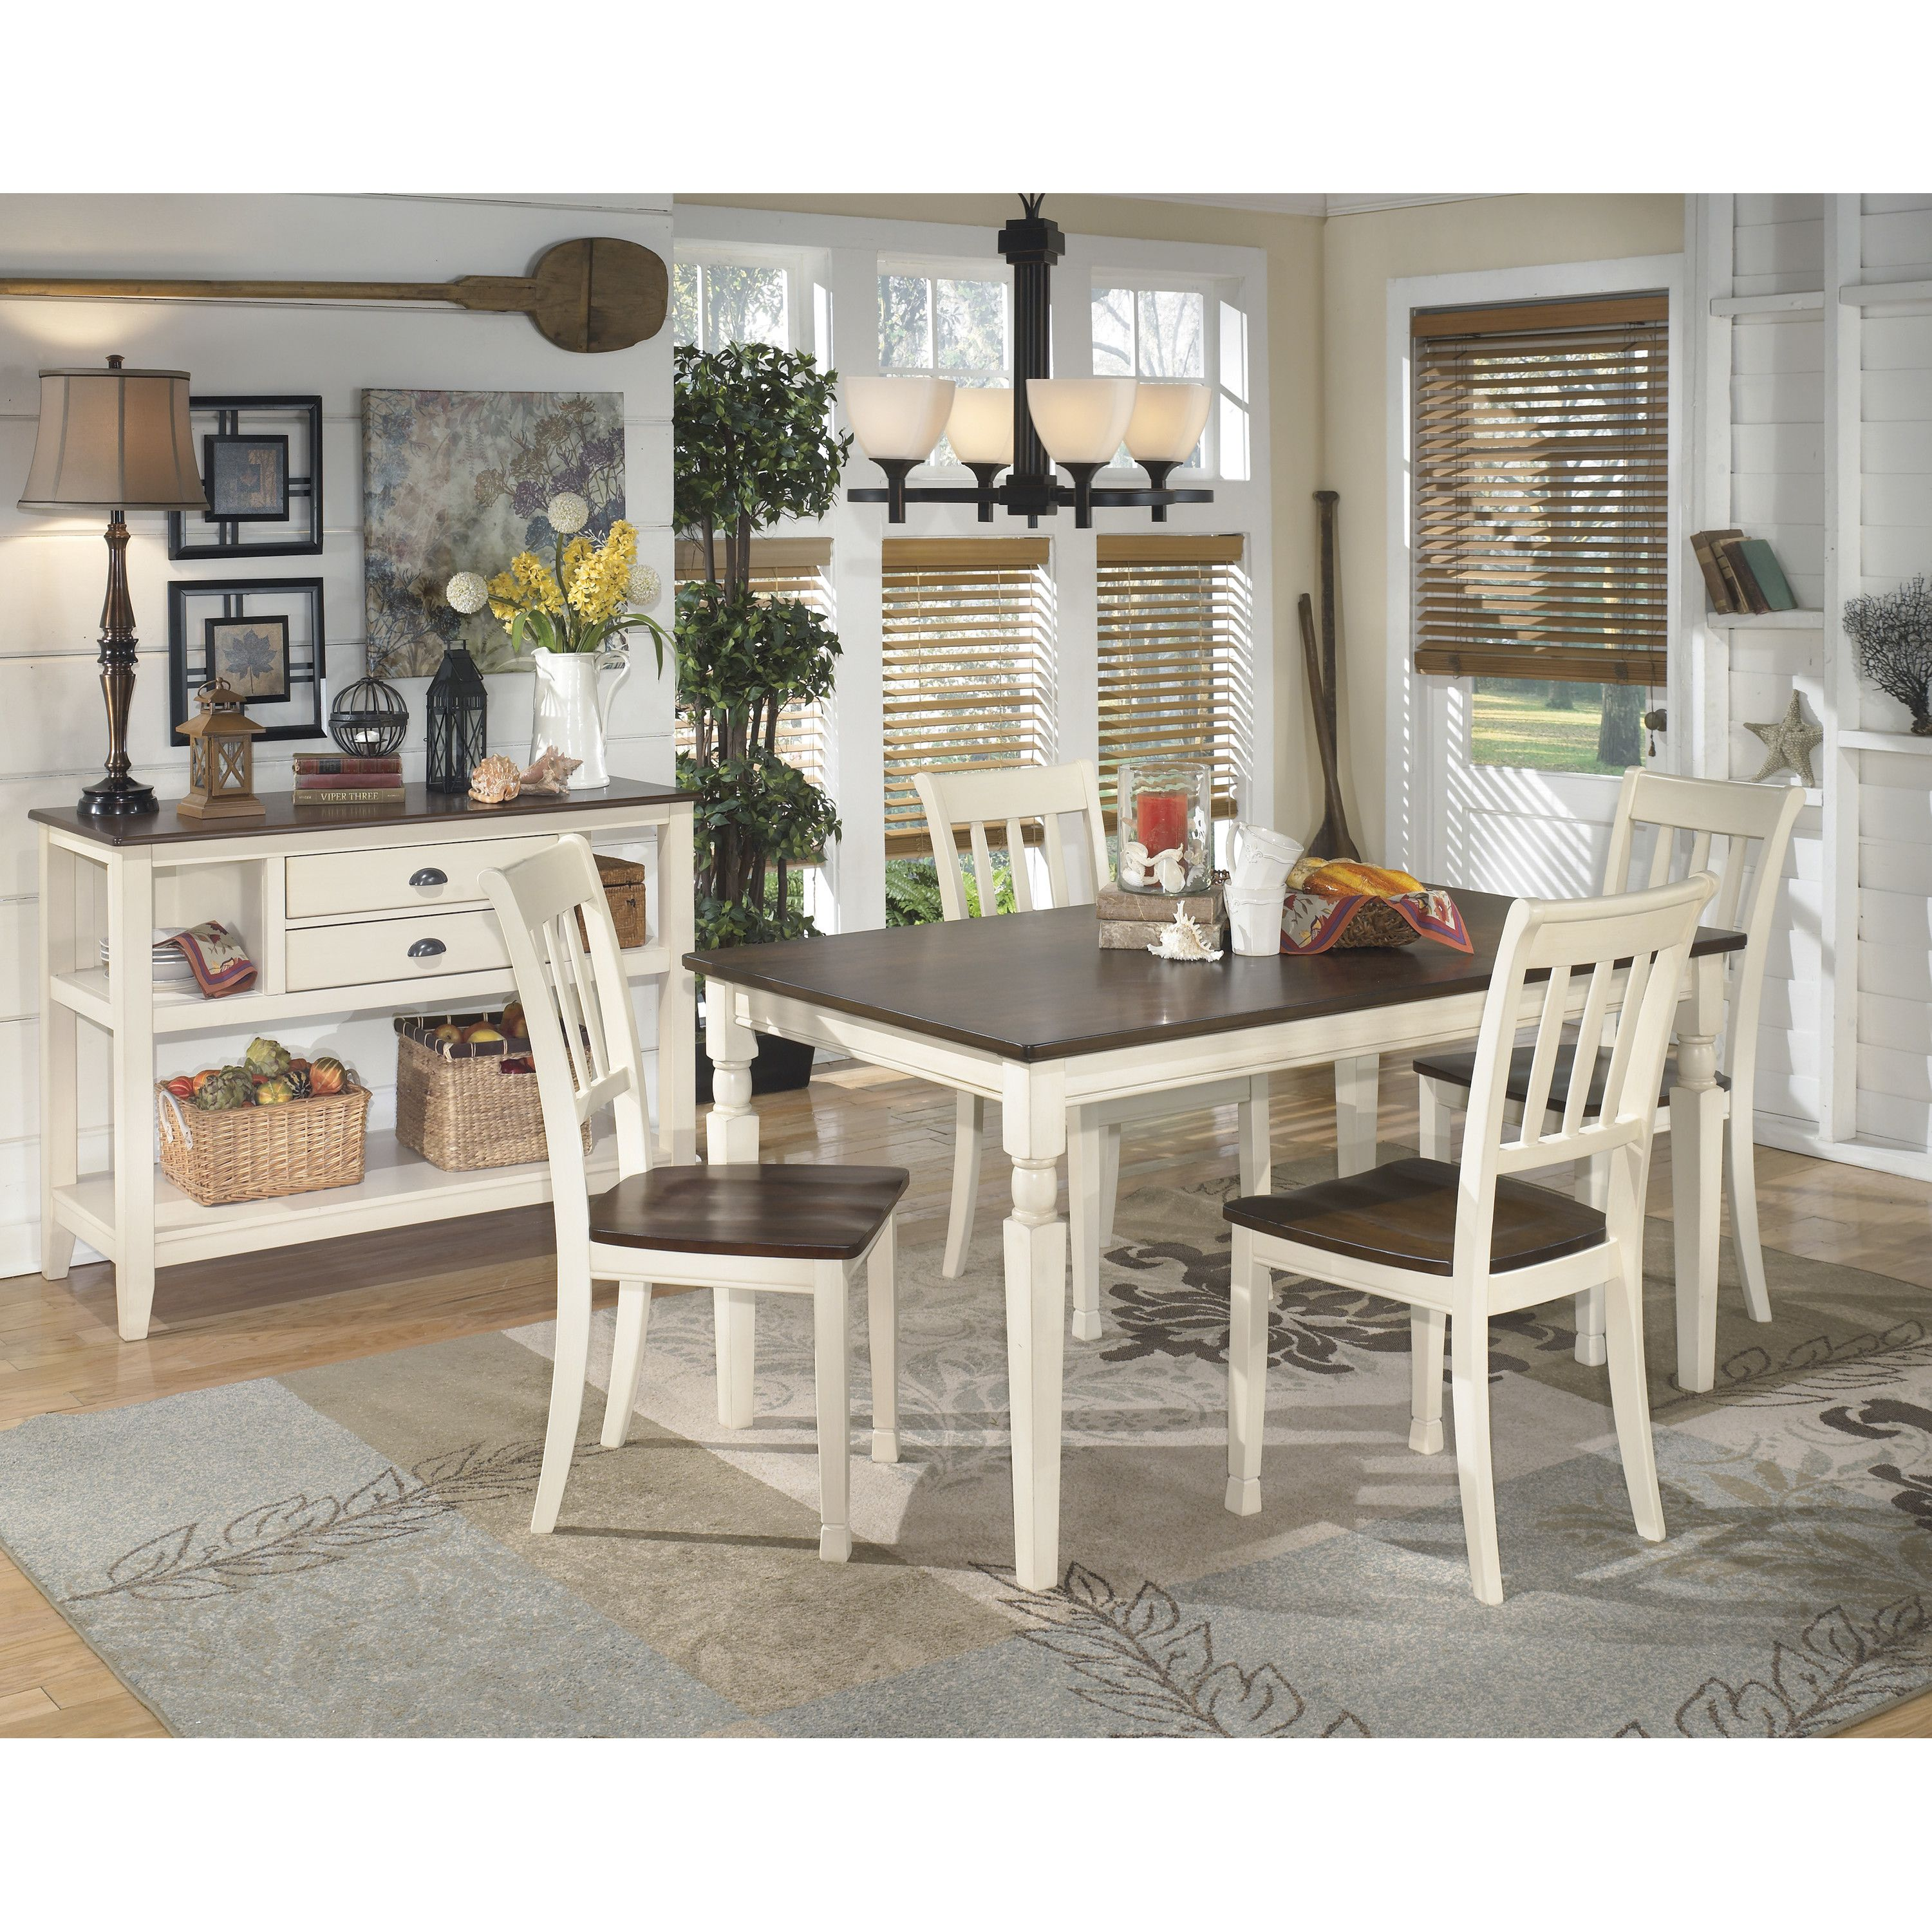 You'll Love The Magellan Dining Table At Wayfair  Great Deals On Stunning Casual Dining Room Tables Design Ideas